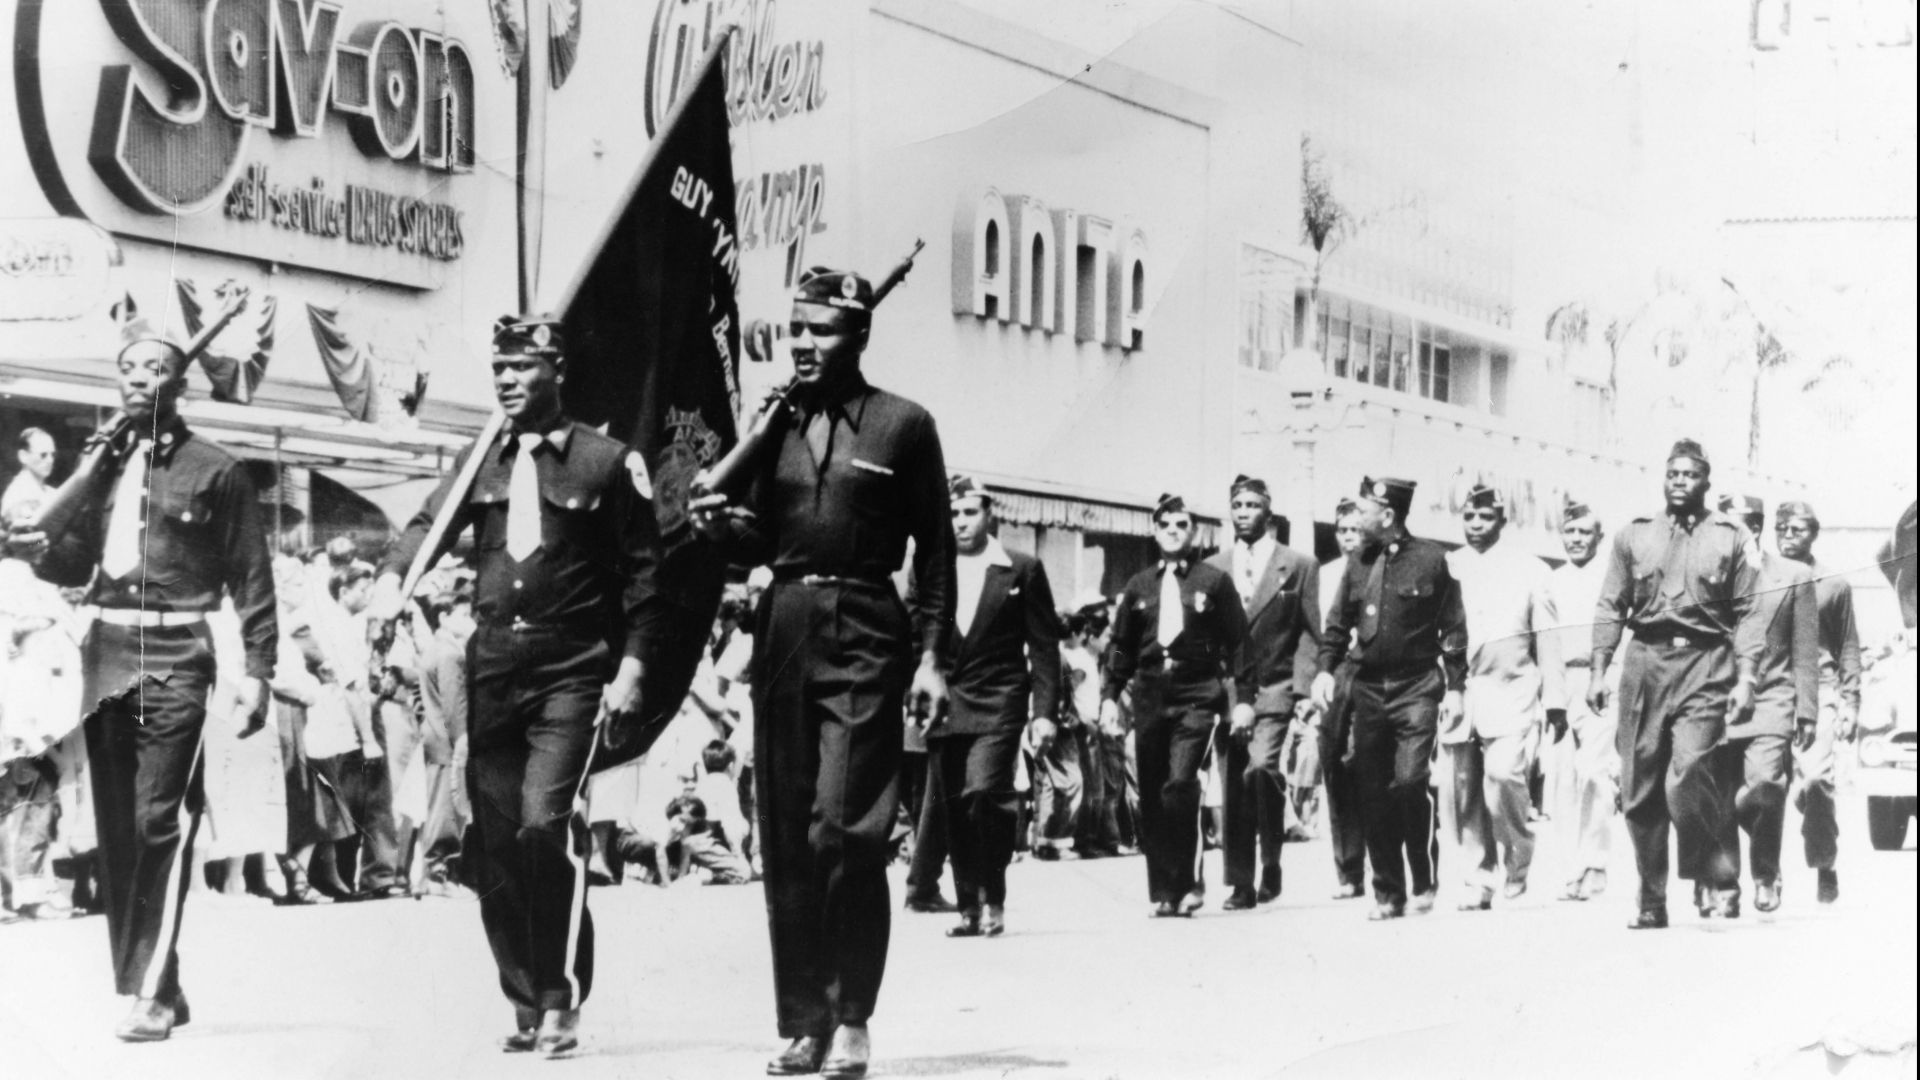 American Legion Post No. 710 Drill Team at Court & E Streets in Downtown SB. 1948. Photo by Henry Hooks, courtesy of San Bernardino County Museum.